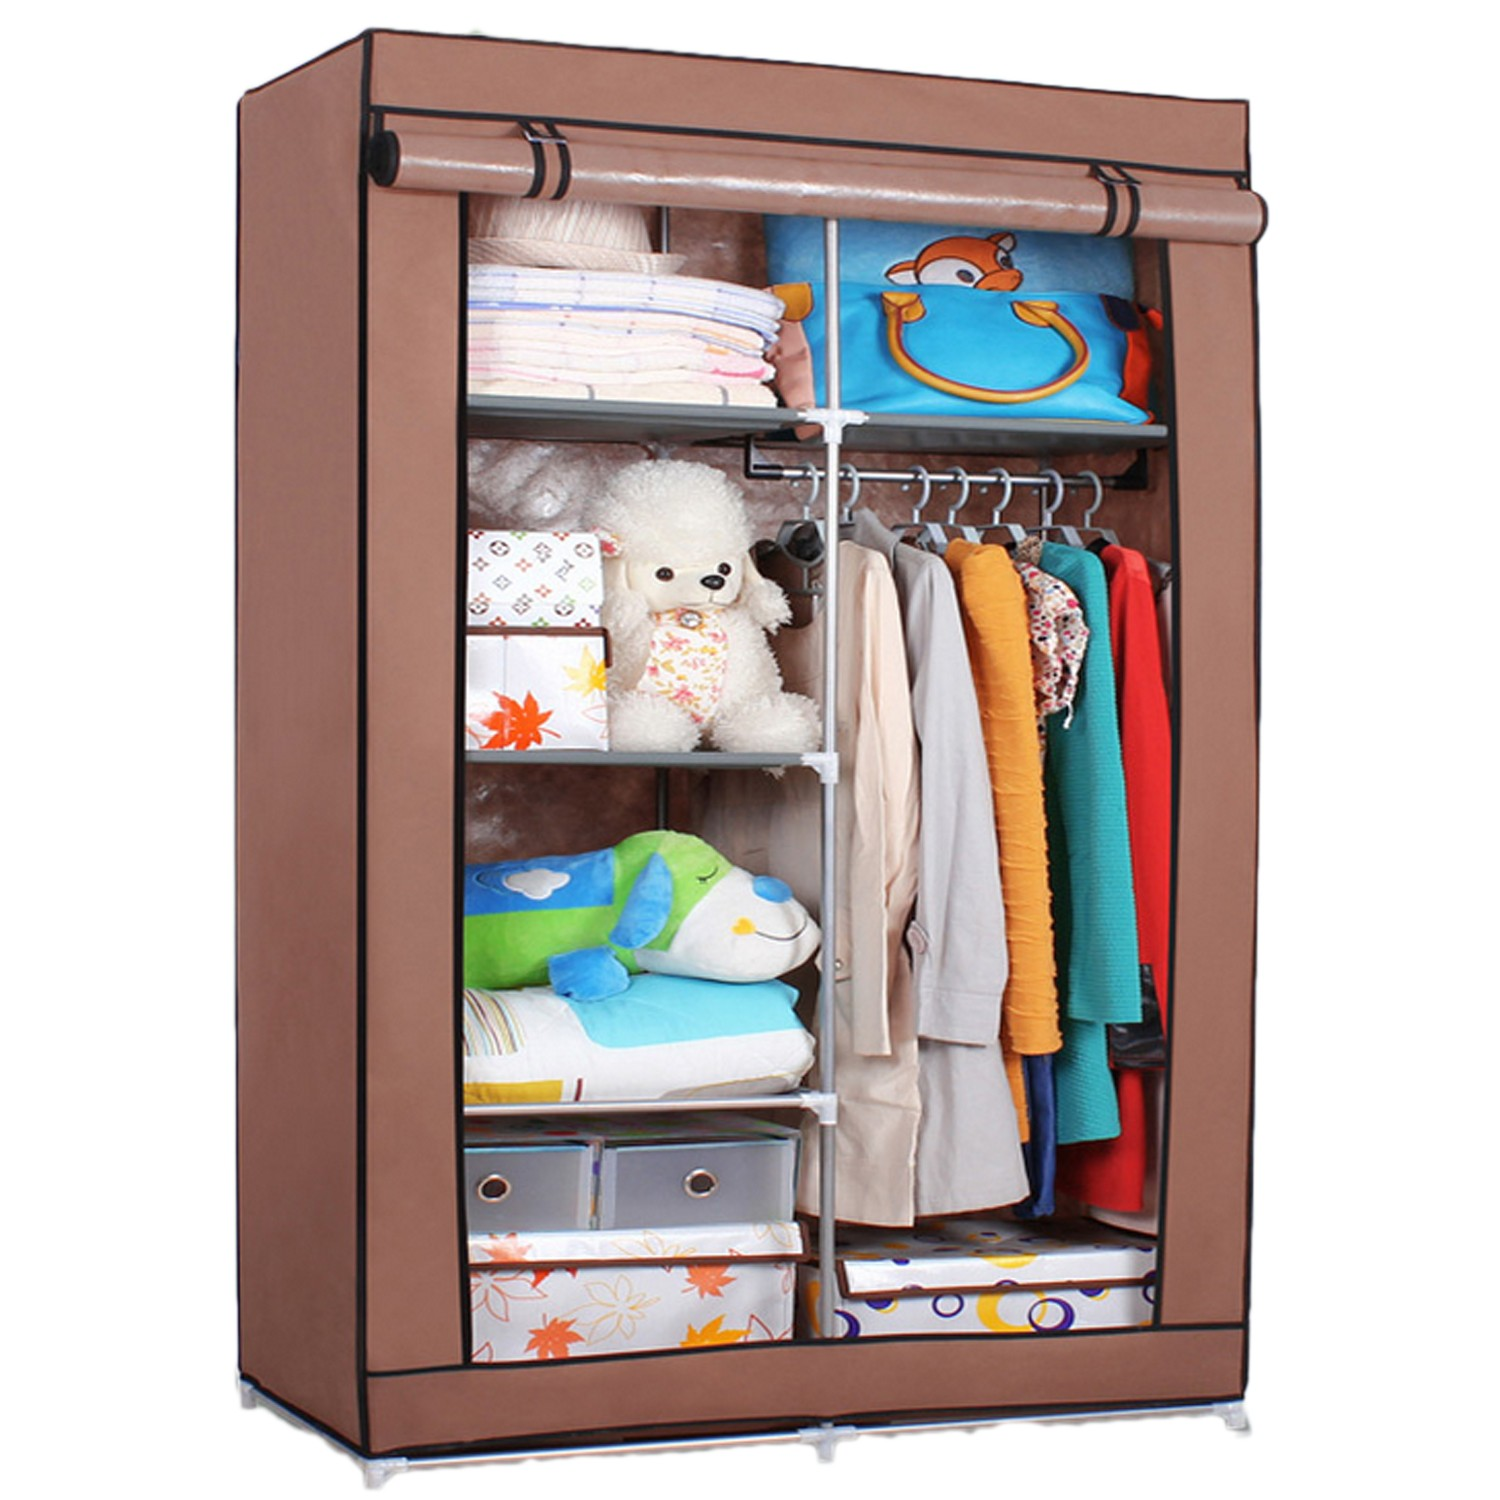 Cupboard Portable Shelf Storage Bedroom Shelves Double